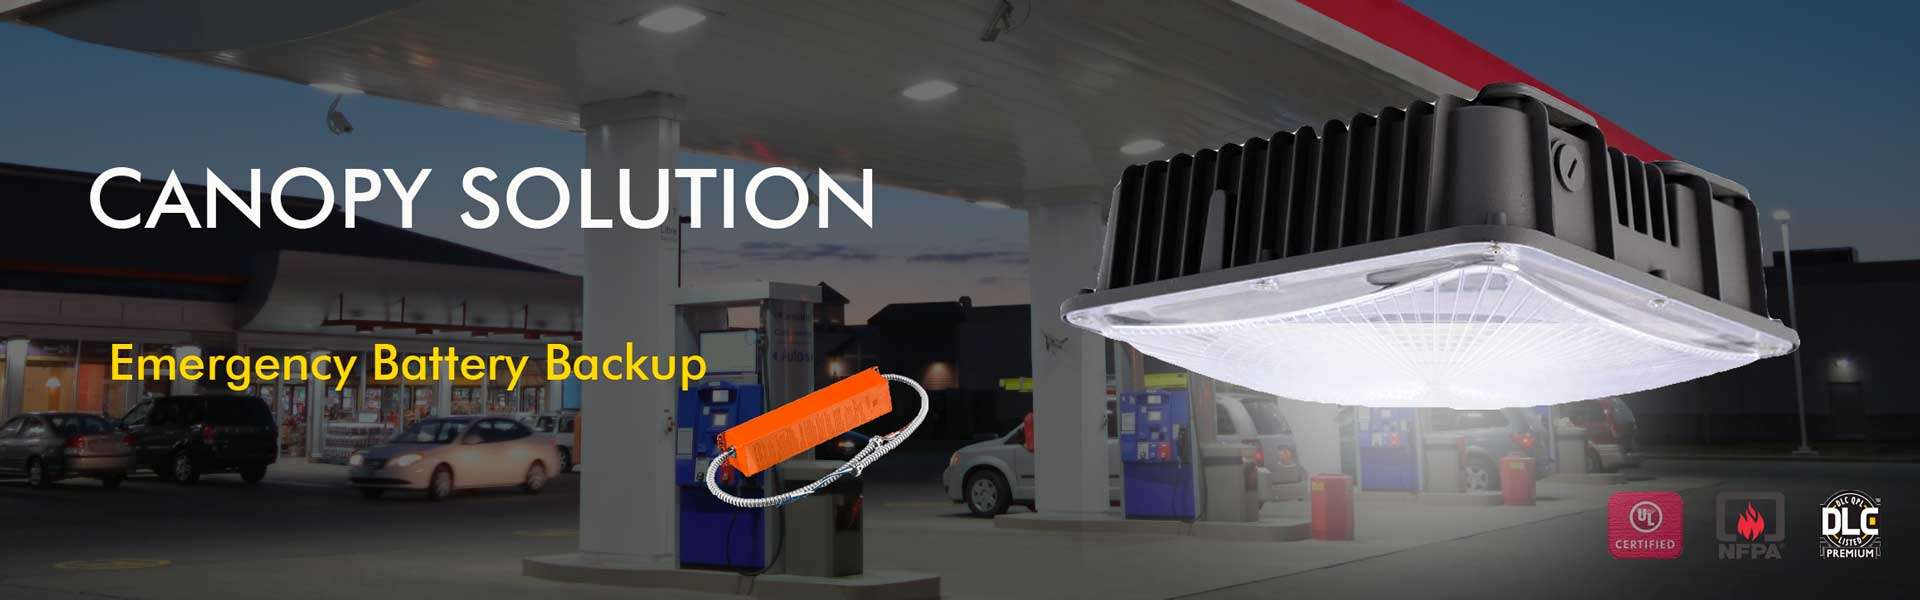 Gas-Station-canopy-light-solution